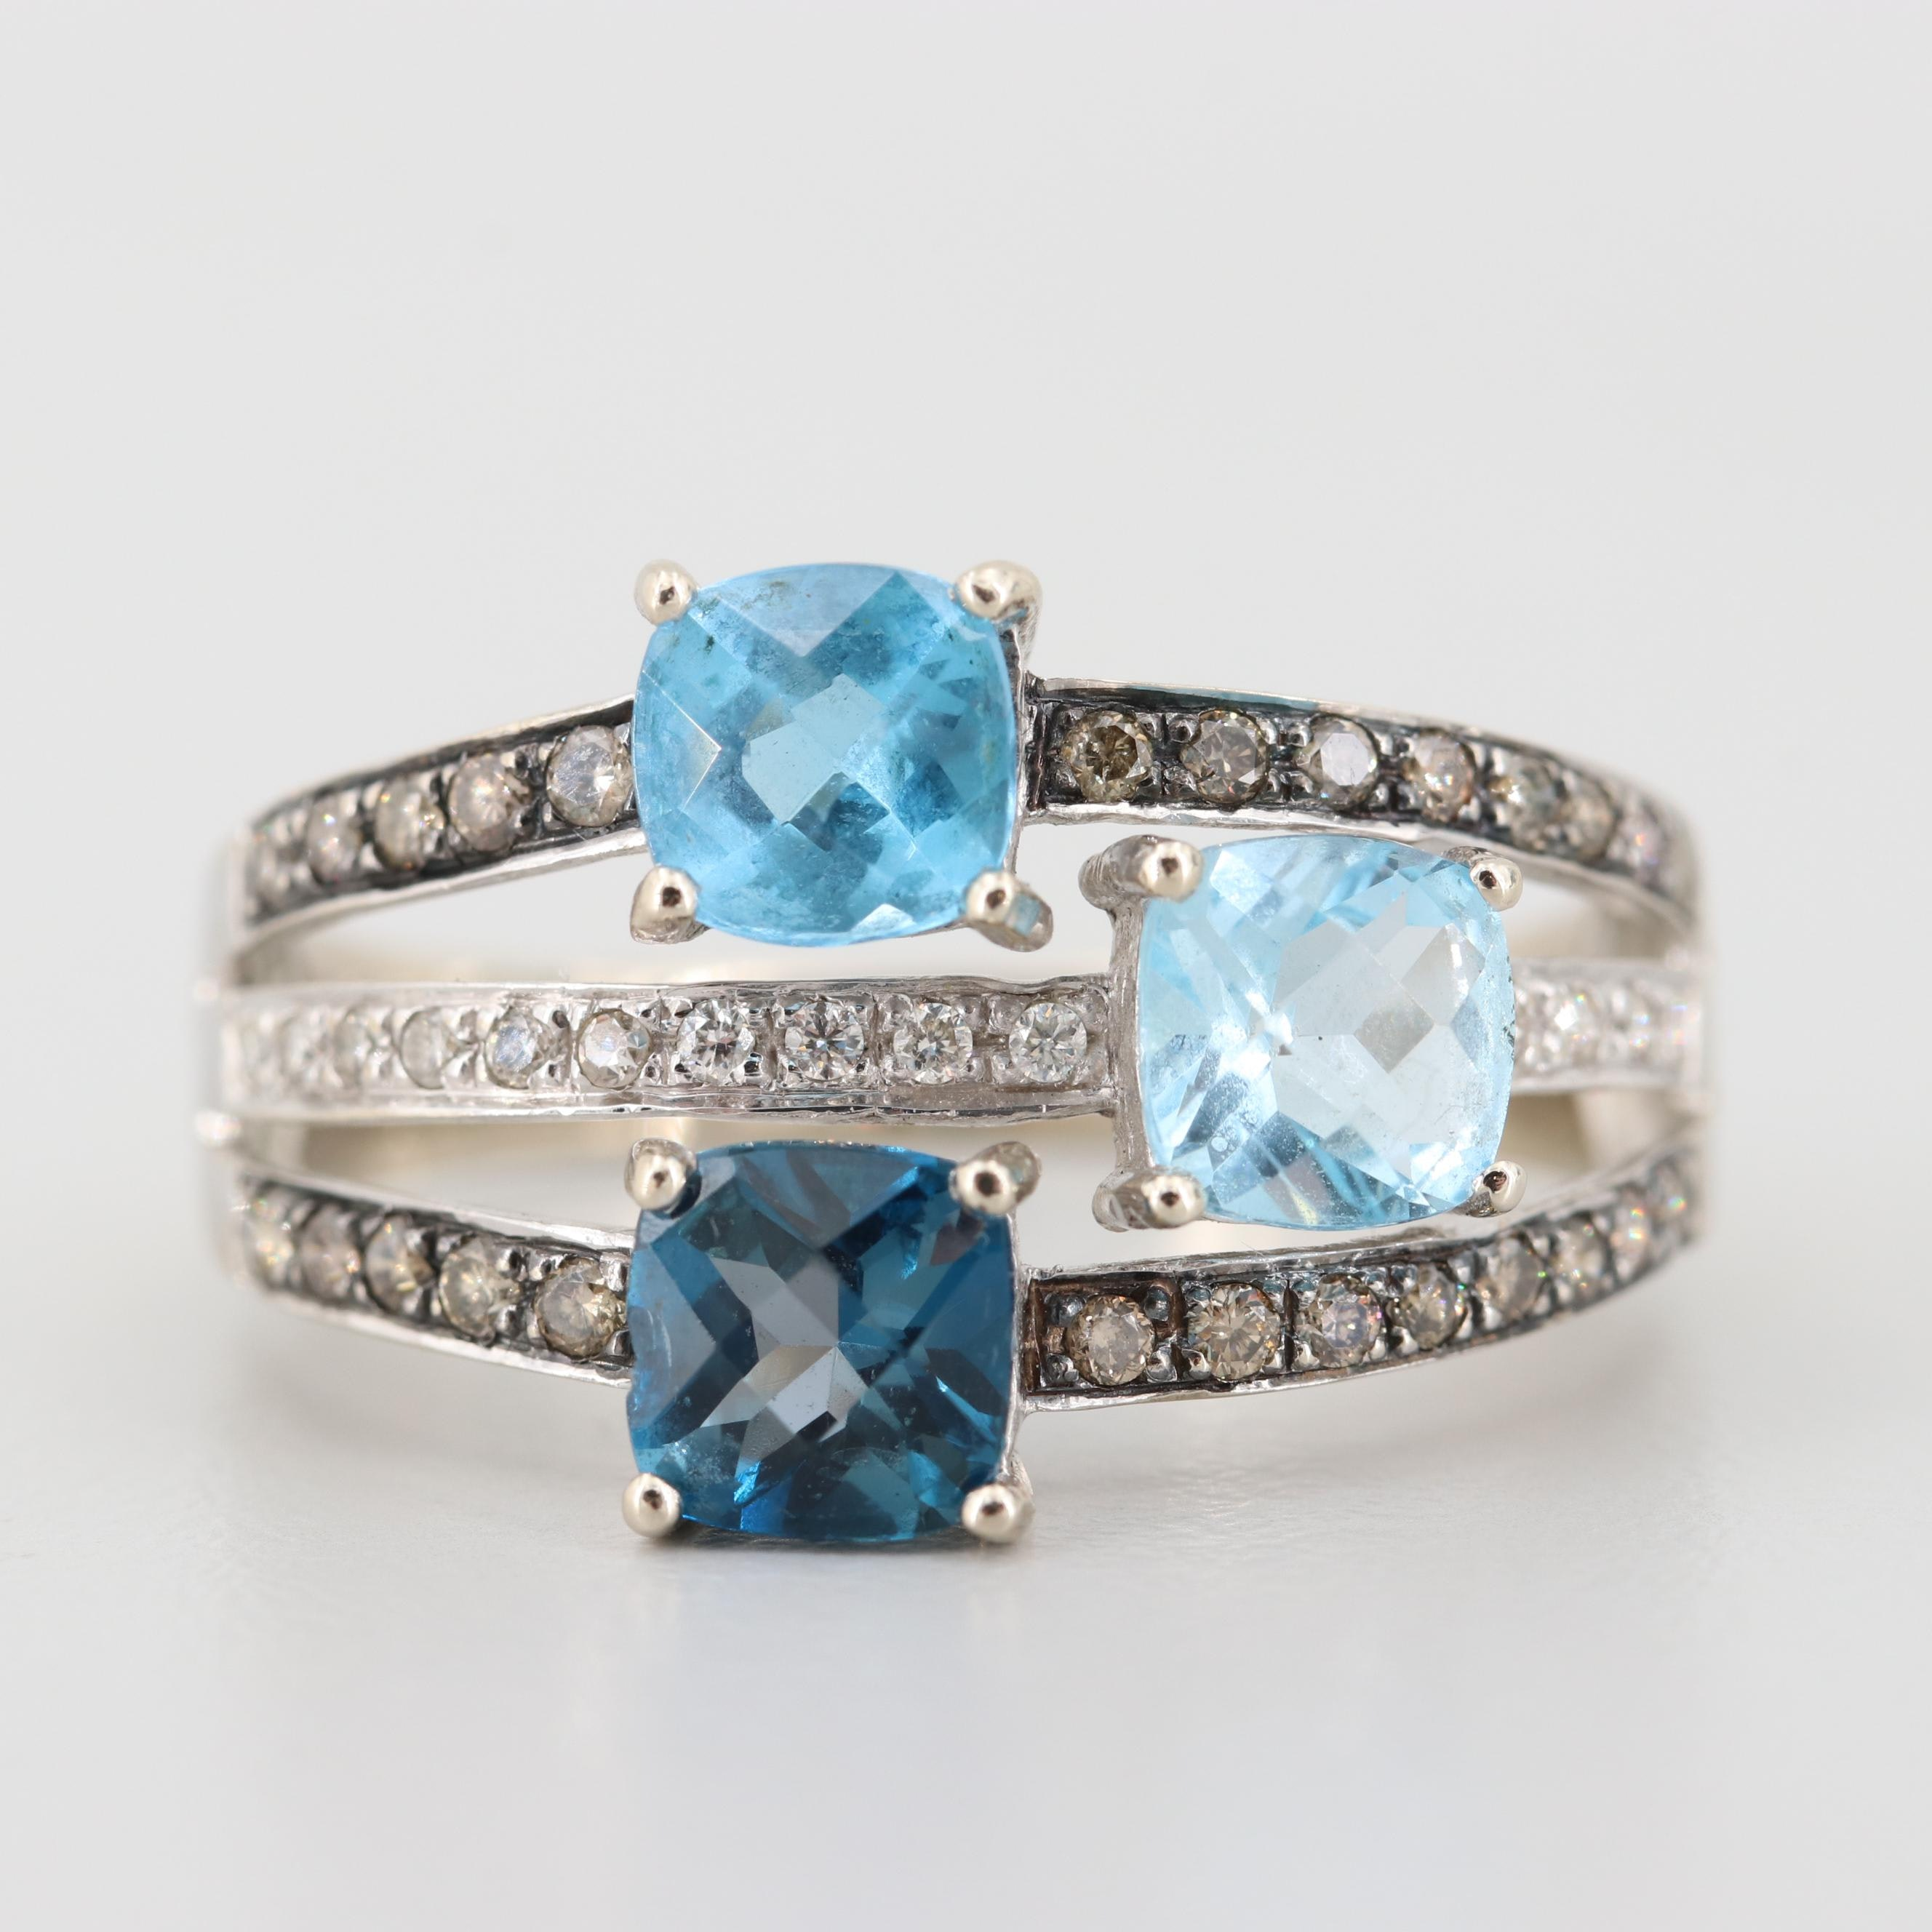 Le Vian 14K White Gold Blue Topaz and Diamond Ring